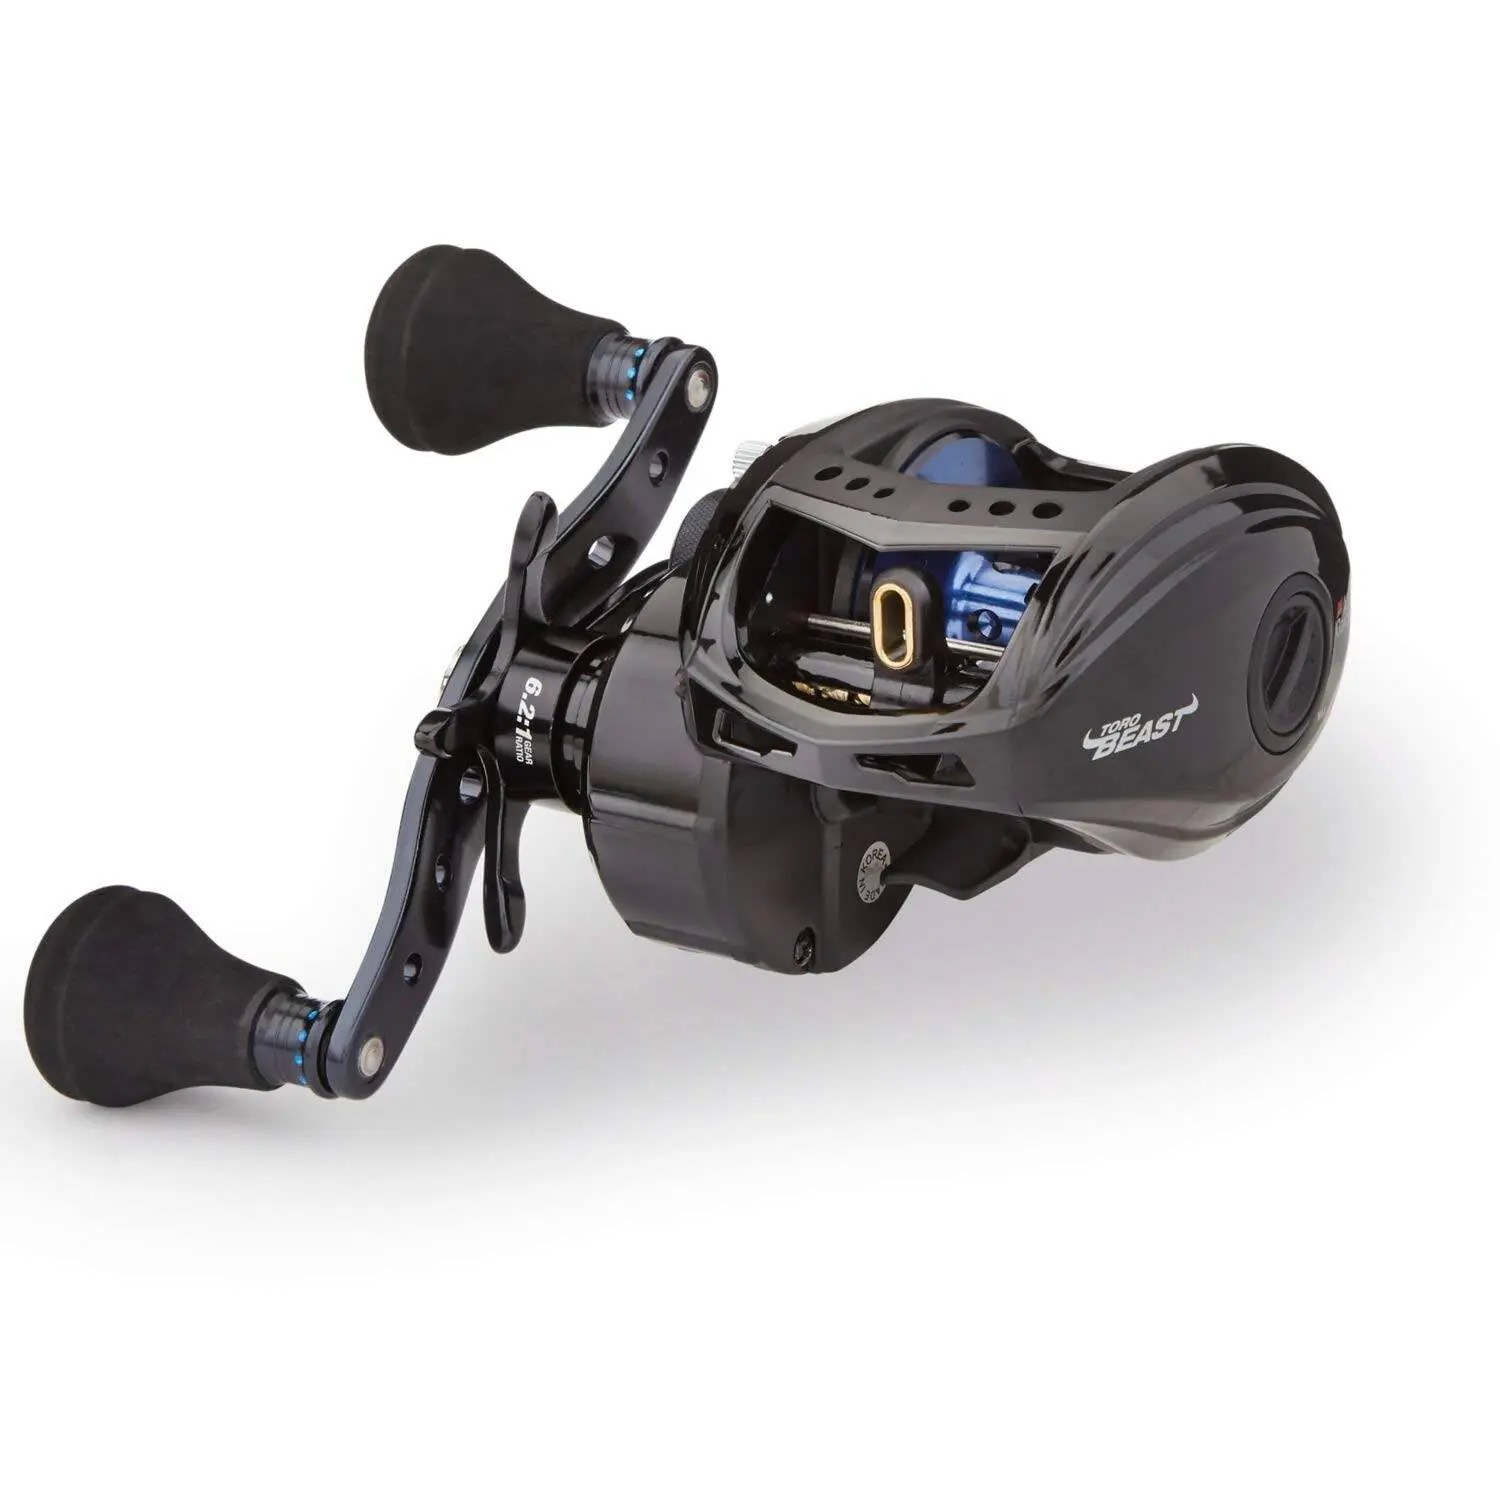 Abu Garcia Revo Toro Beast Low-Profile Baitcast Fishing Reel